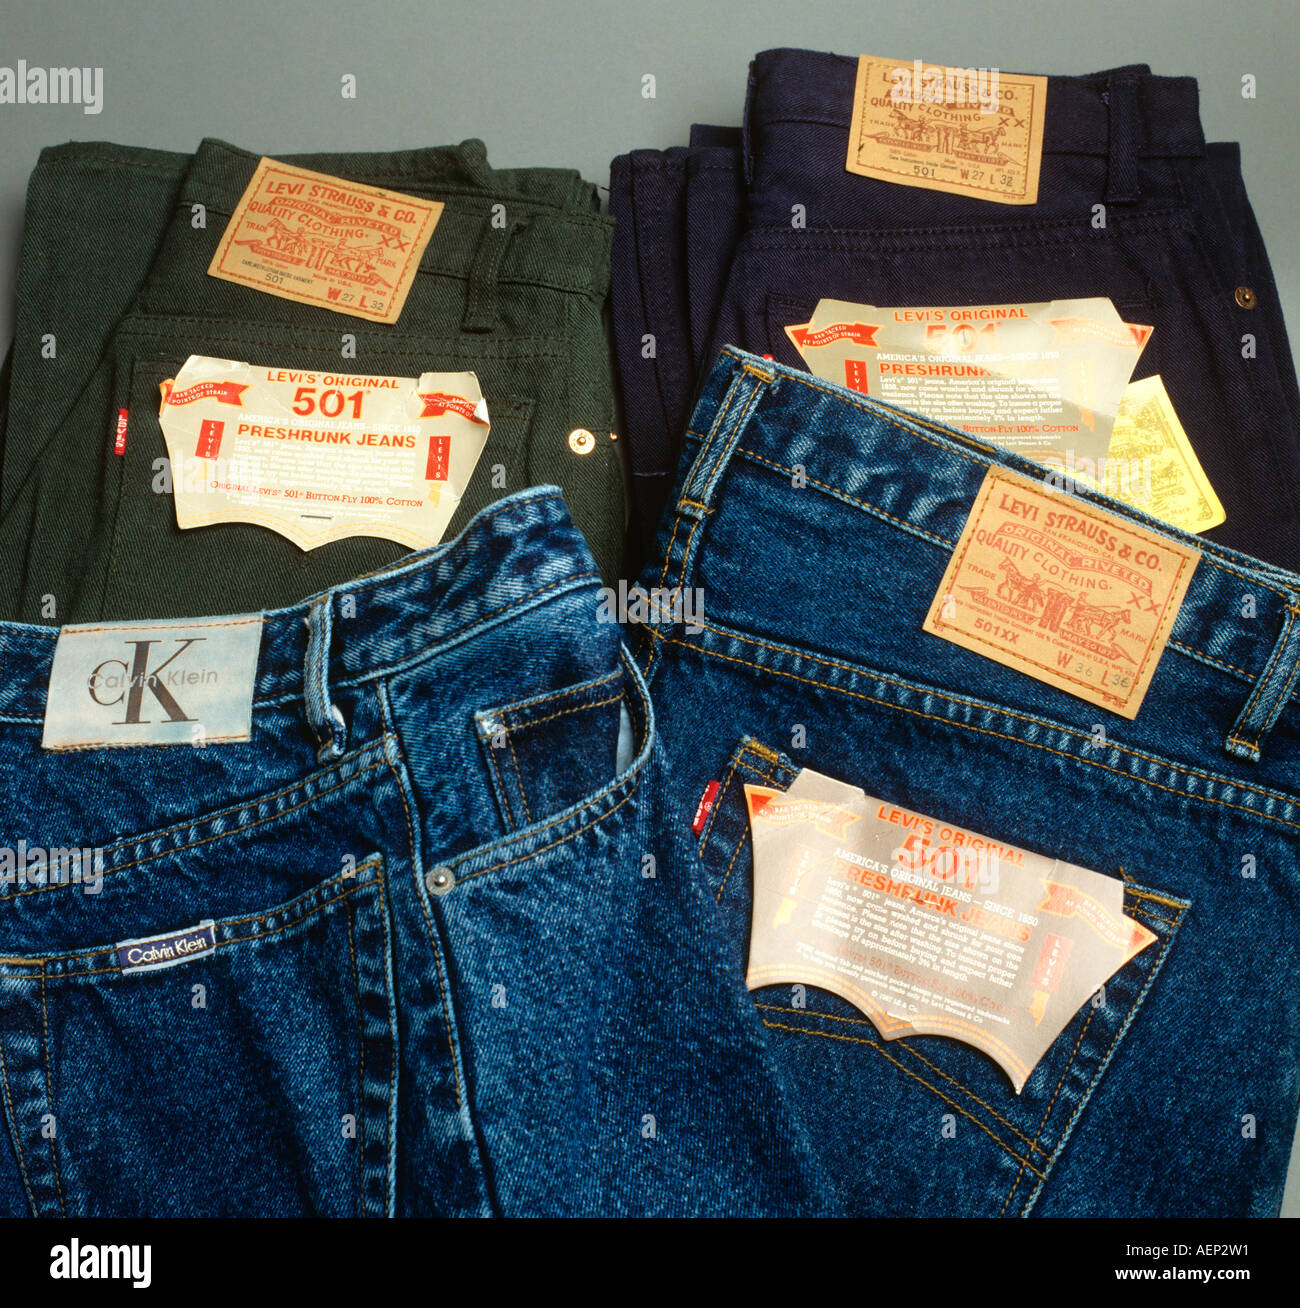 Counterfeit clothing fake designer jeans from Thailand ...